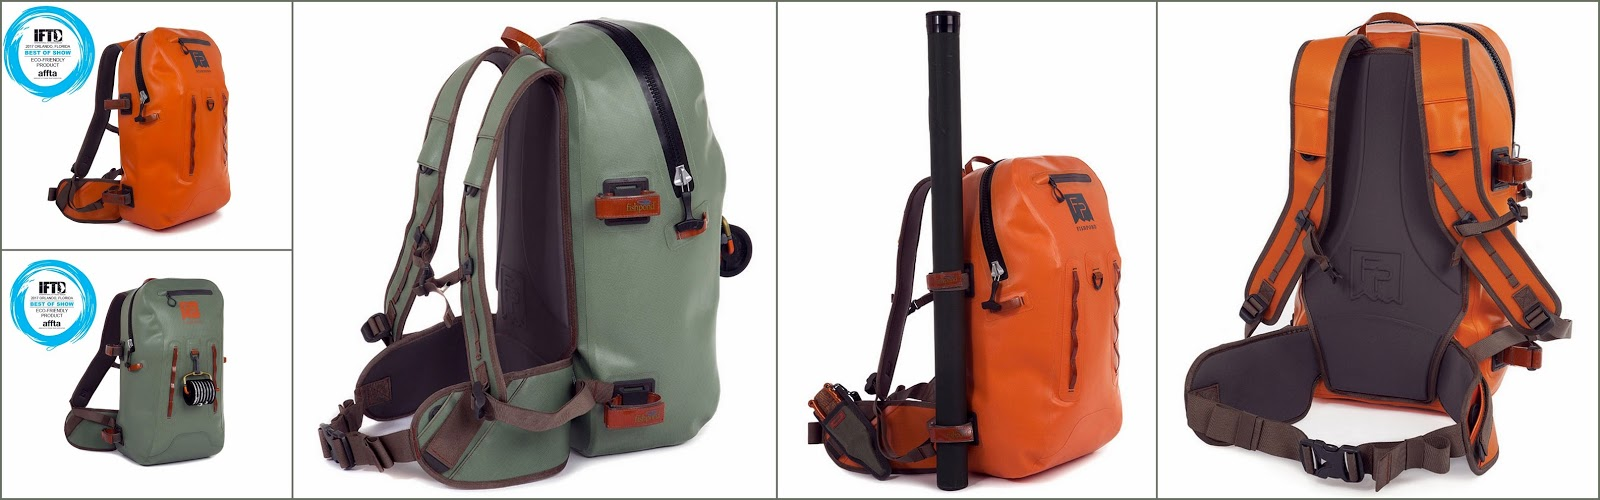 50f4110a3a7 I consider a waterproof backpack to be an essential item in my fly fishing  paraphernalia. Whether be all day excursions